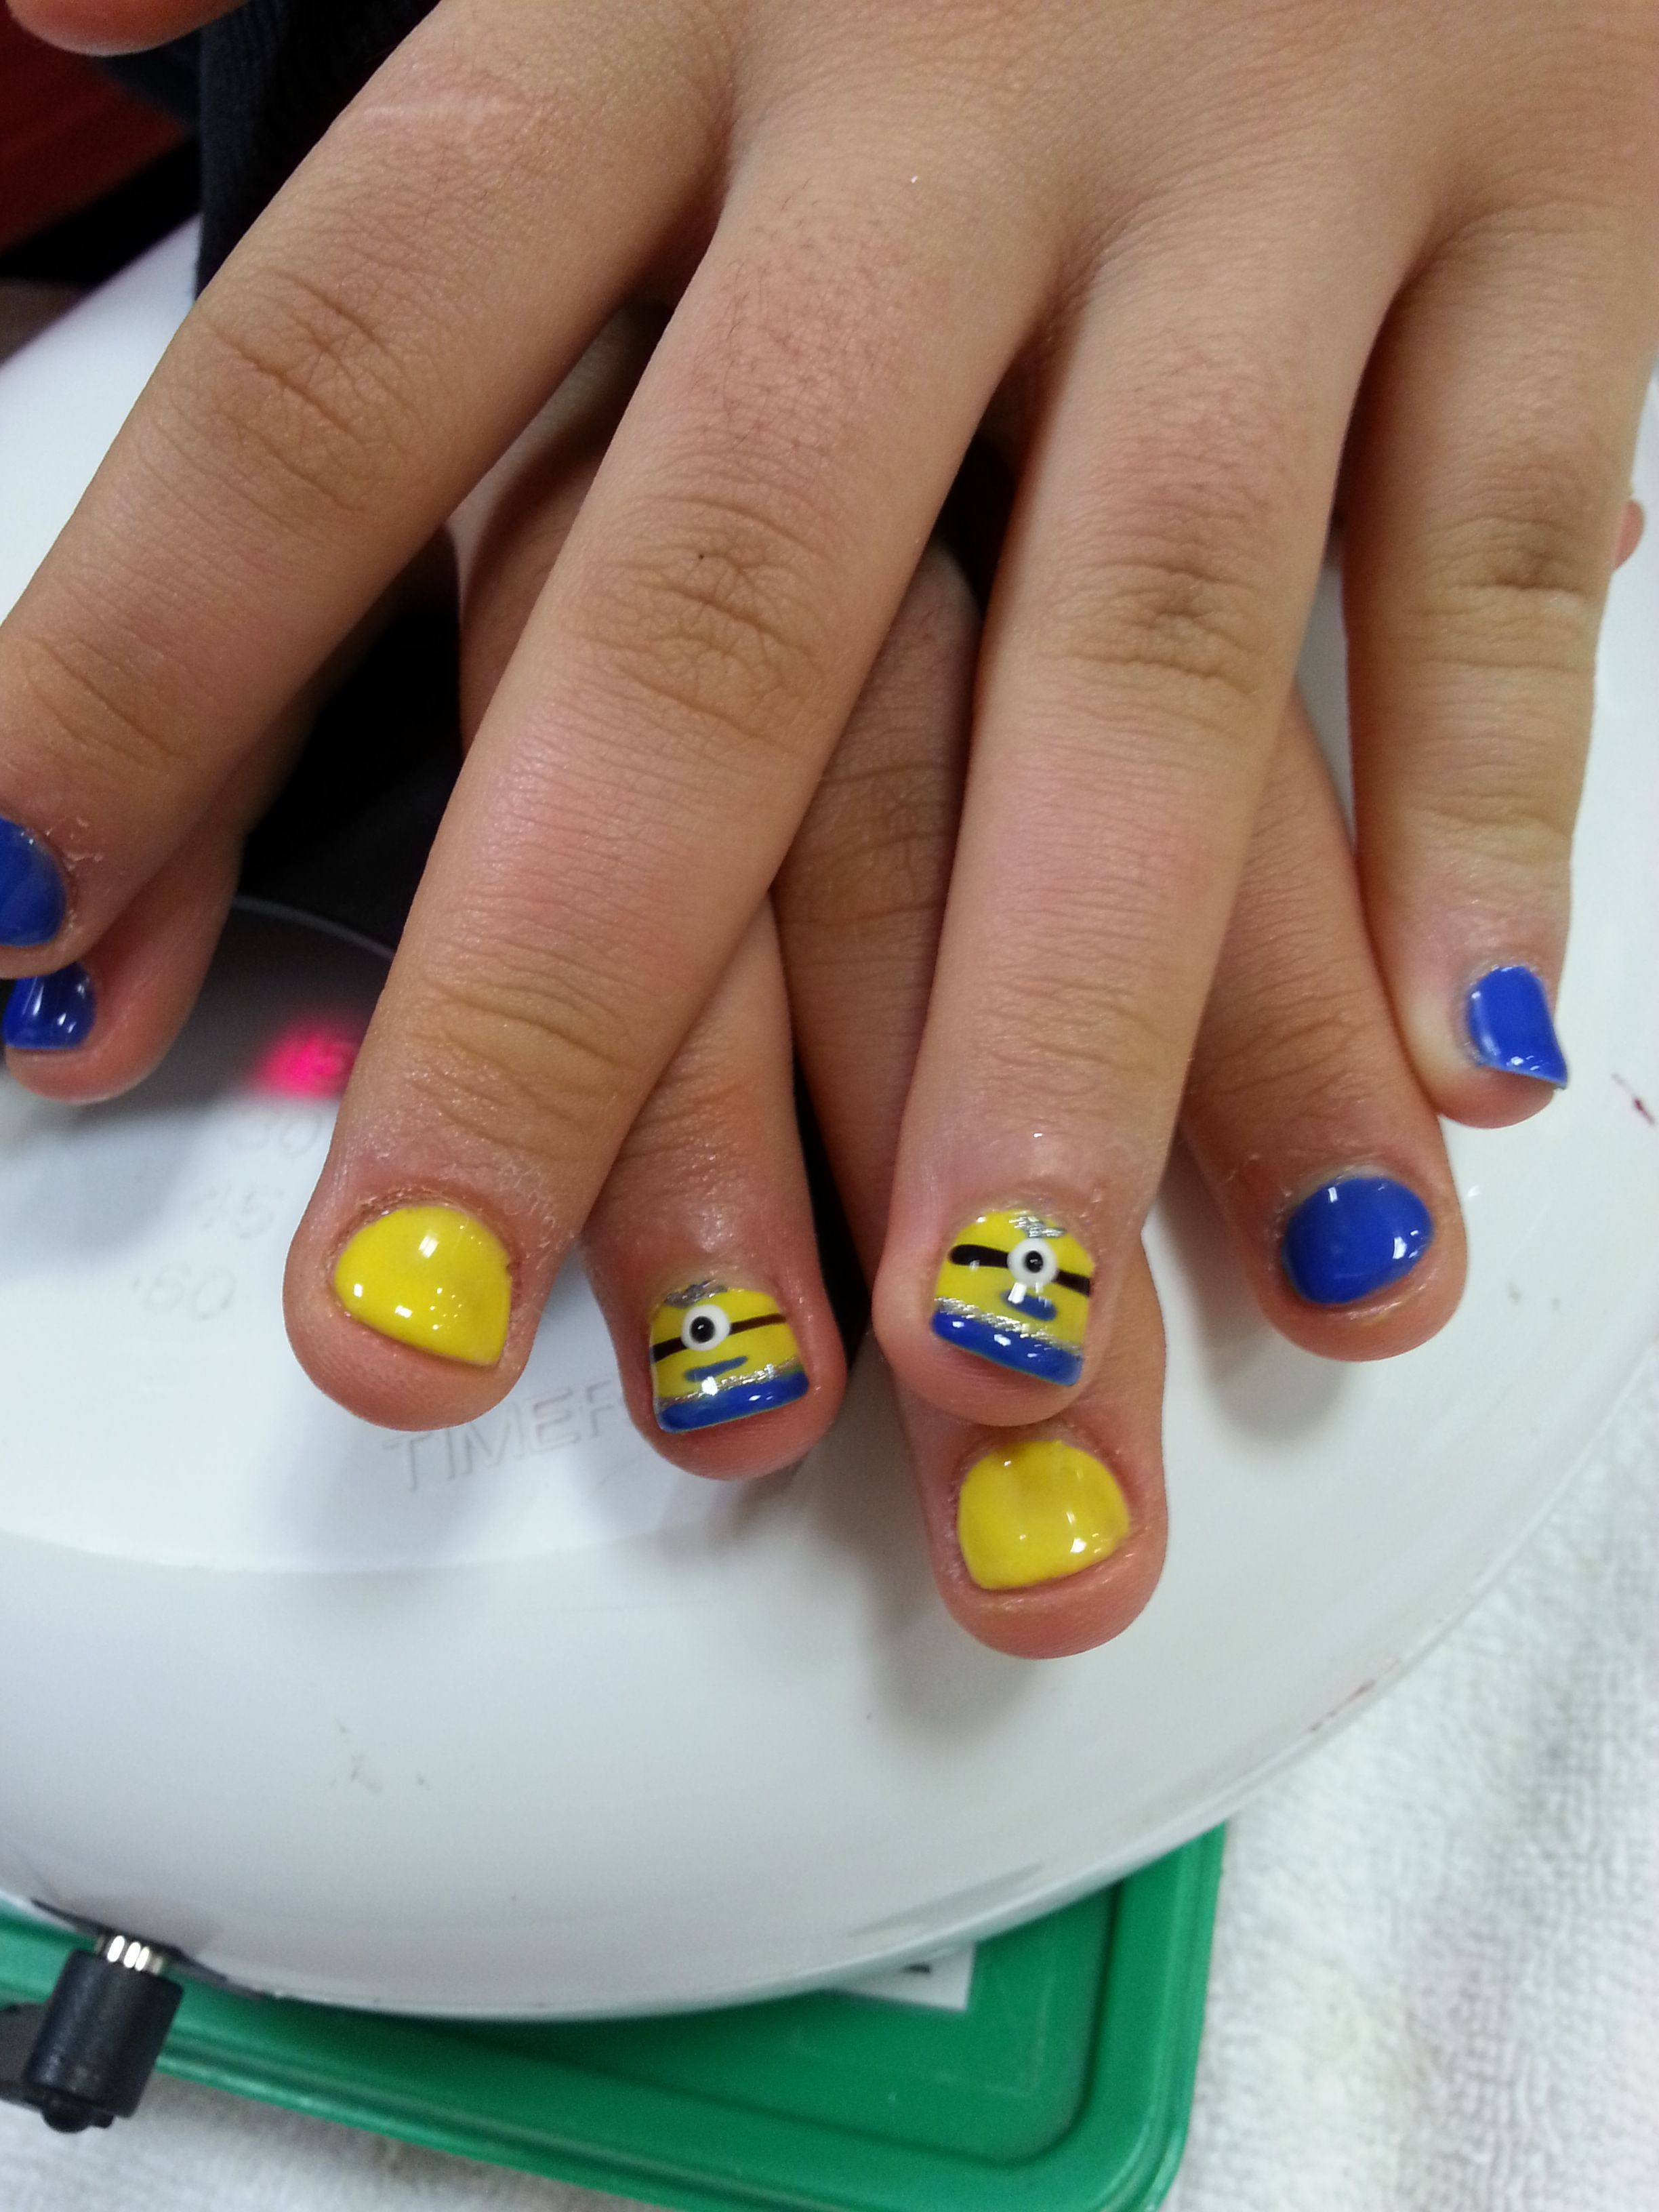 Kids Gel Nail With Design Kidsnail Kids Nail Cute Cutenail Nailart Cookies Et Biscuits Easy Ongles